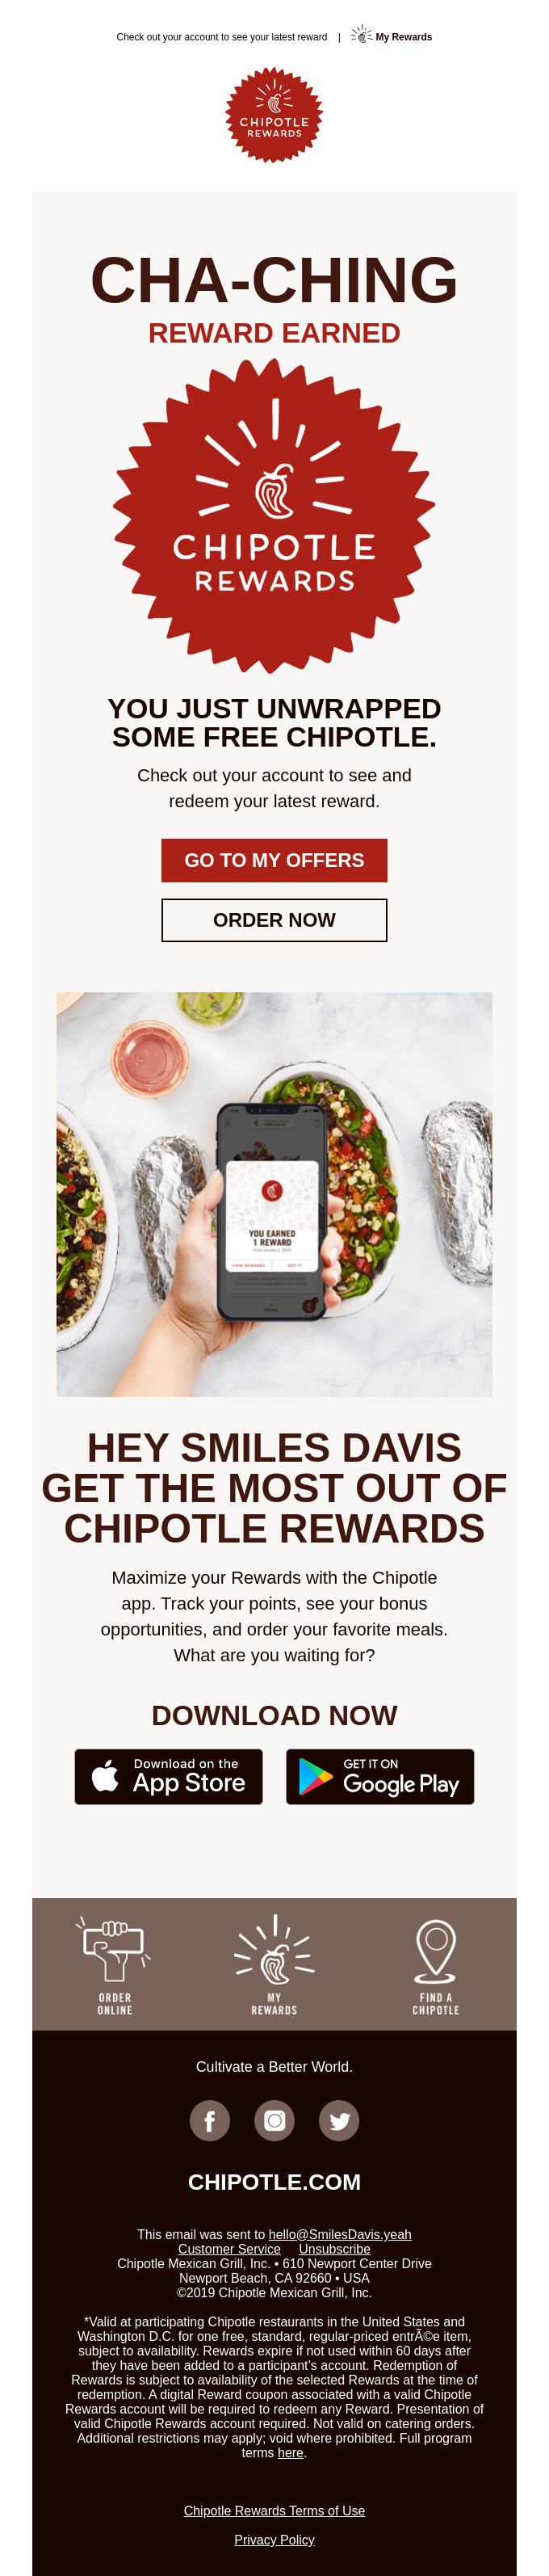 Way to Chipotle, you earned a reward